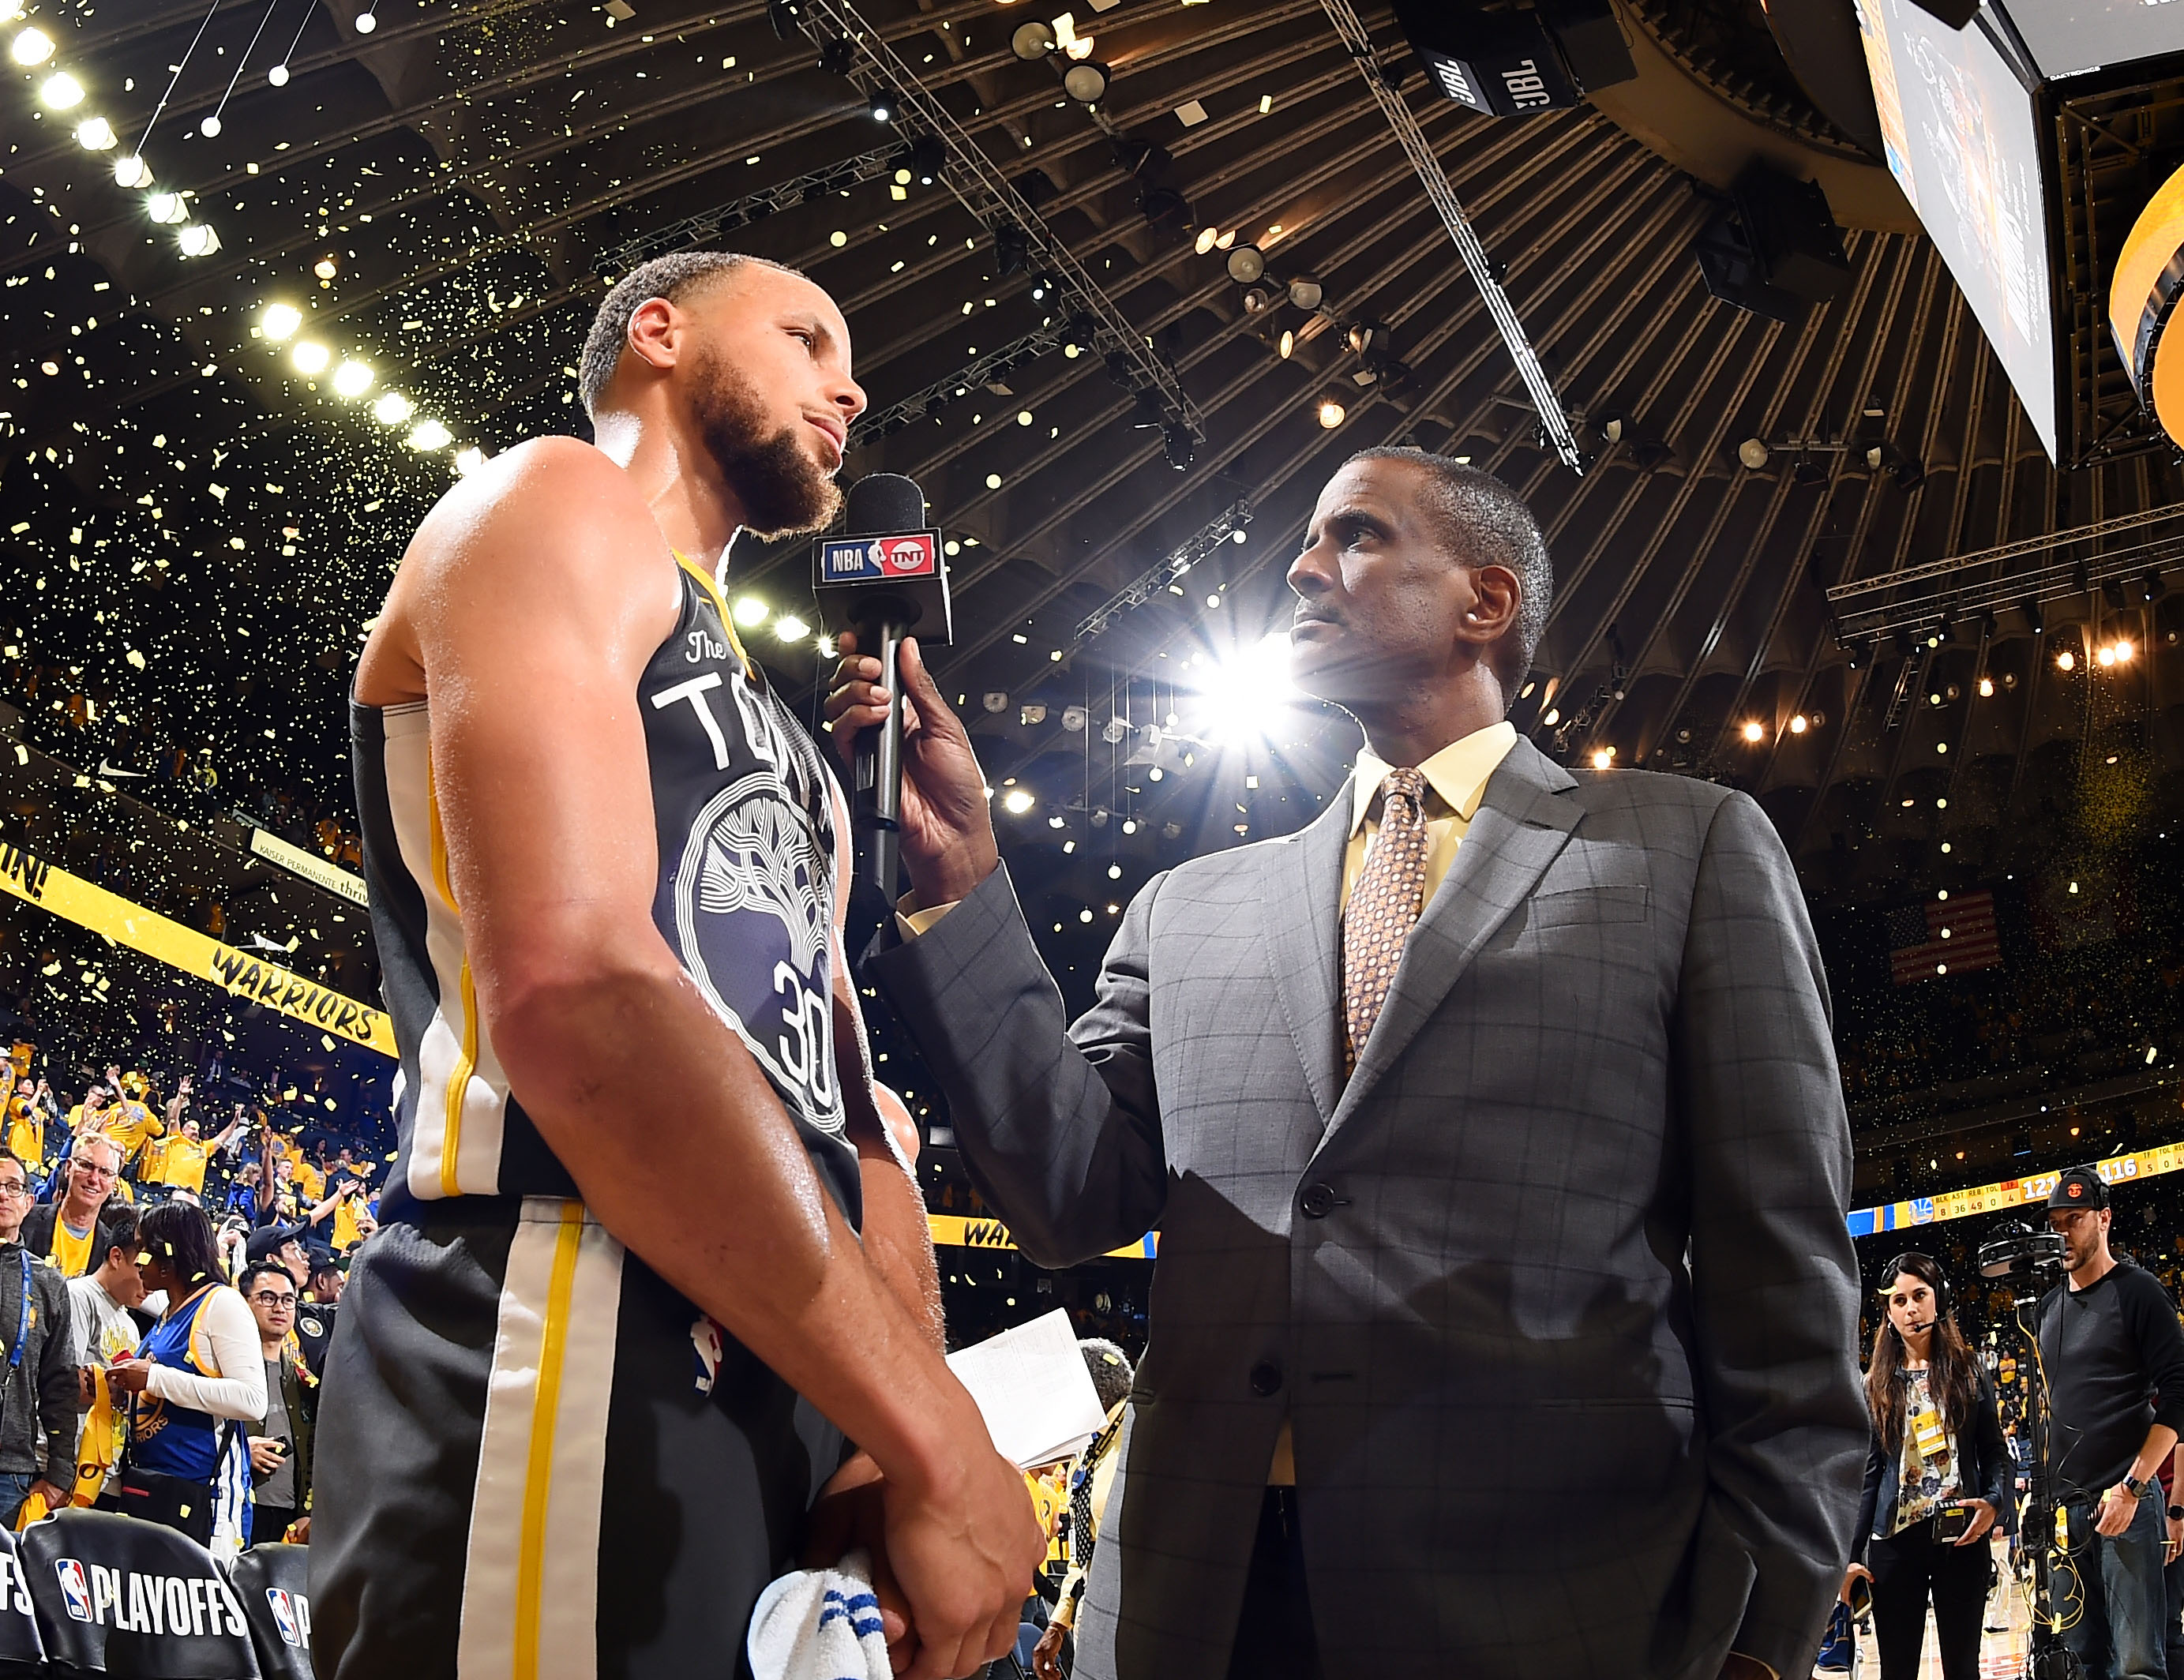 Warriors star Stephen Curry 'felt great' in impressive return from injury